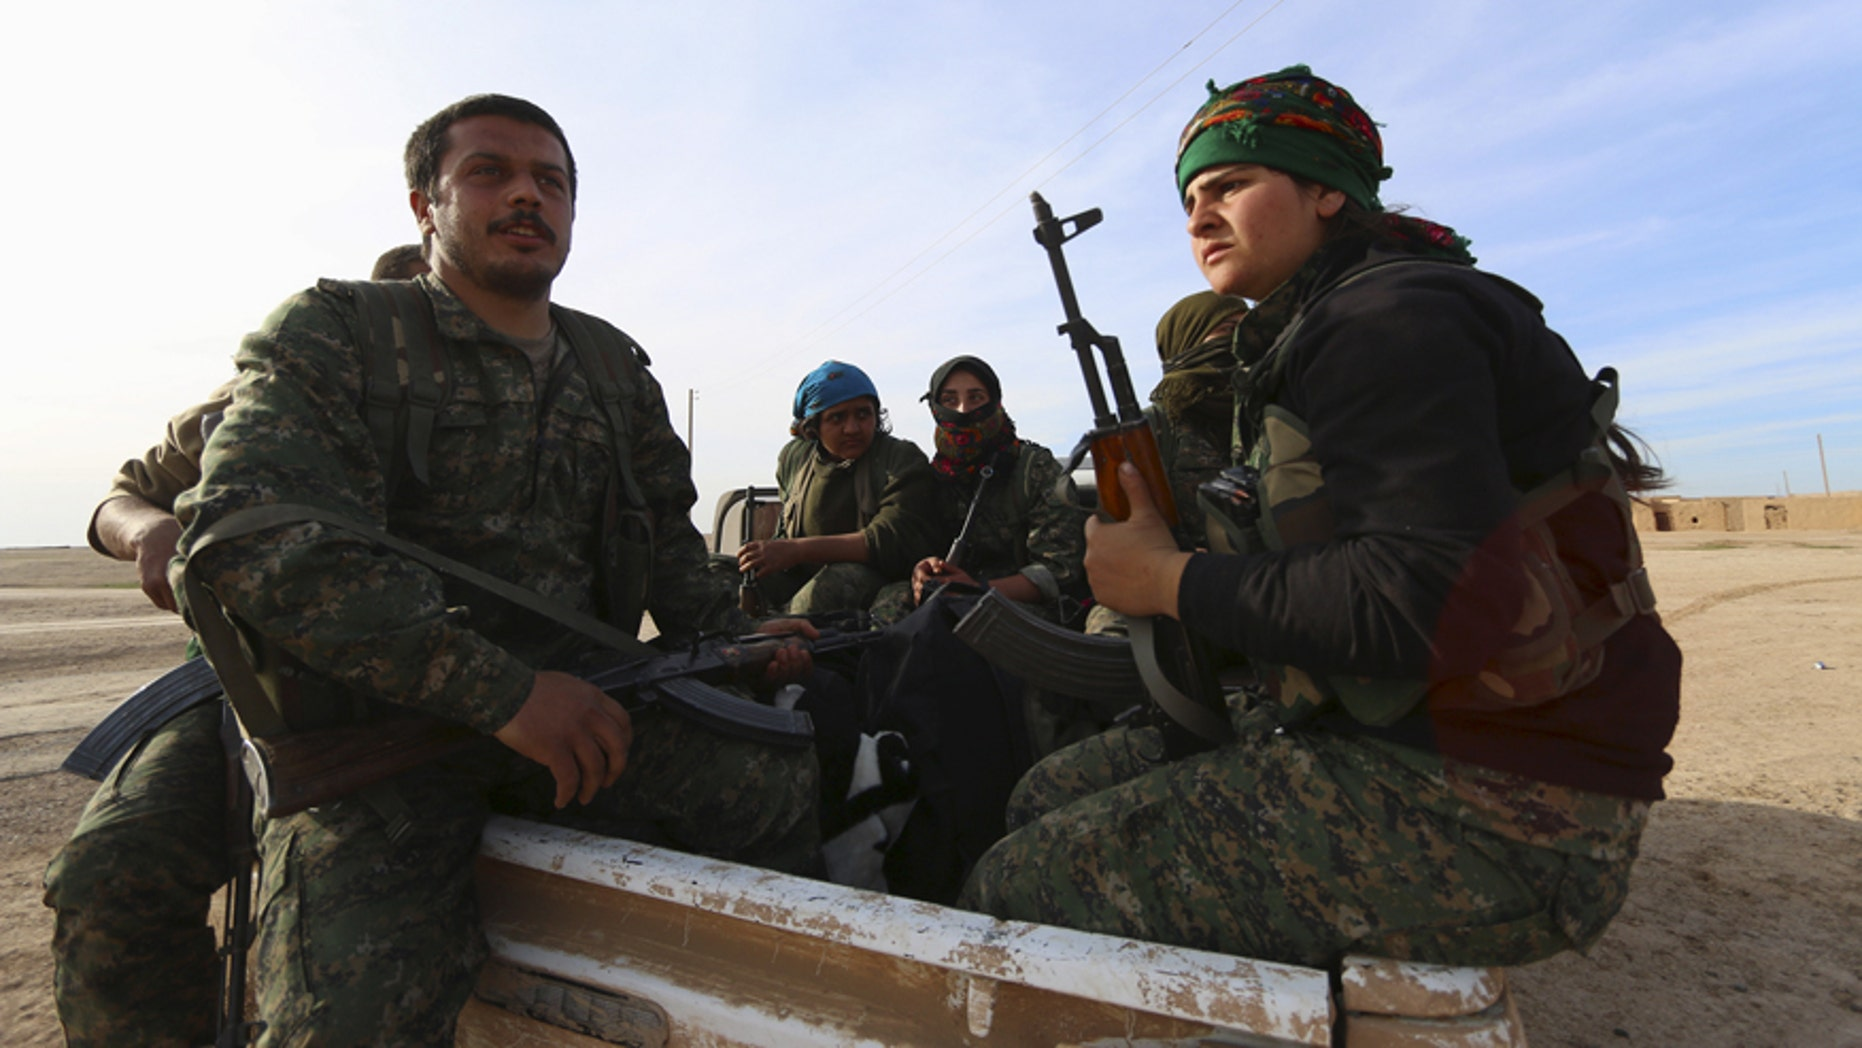 Feb. 17, 2016: Fighters from the Democratic Forces of Syria carry their weapons on the back of a pick-up truck in Ghazila village after taking control of the town from Islamic State forces in the southern countryside of Hasaka, Syria.